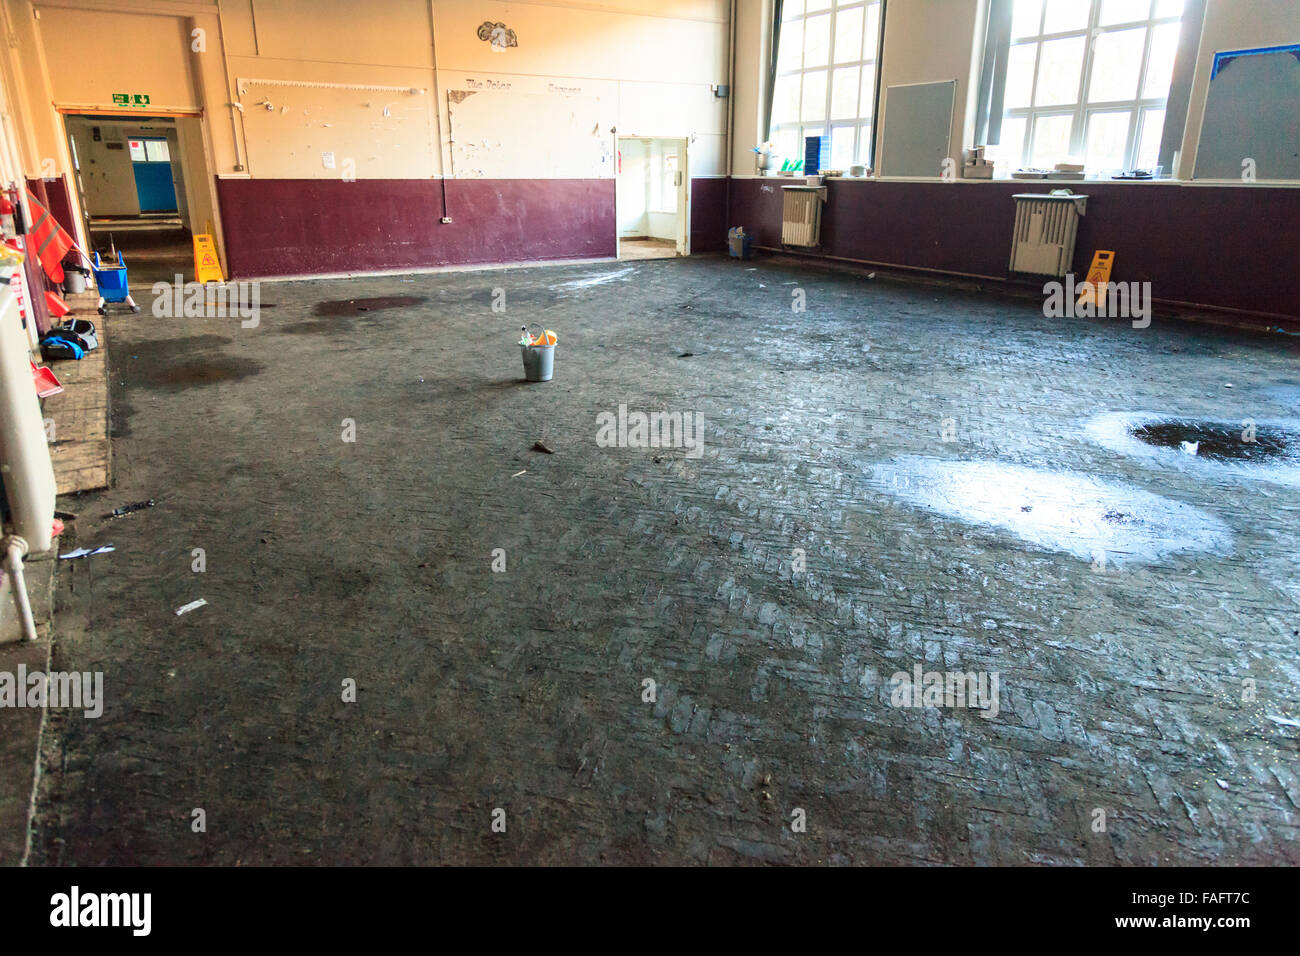 hebden bridge uk 29th dec 2015 the 100 year old floor